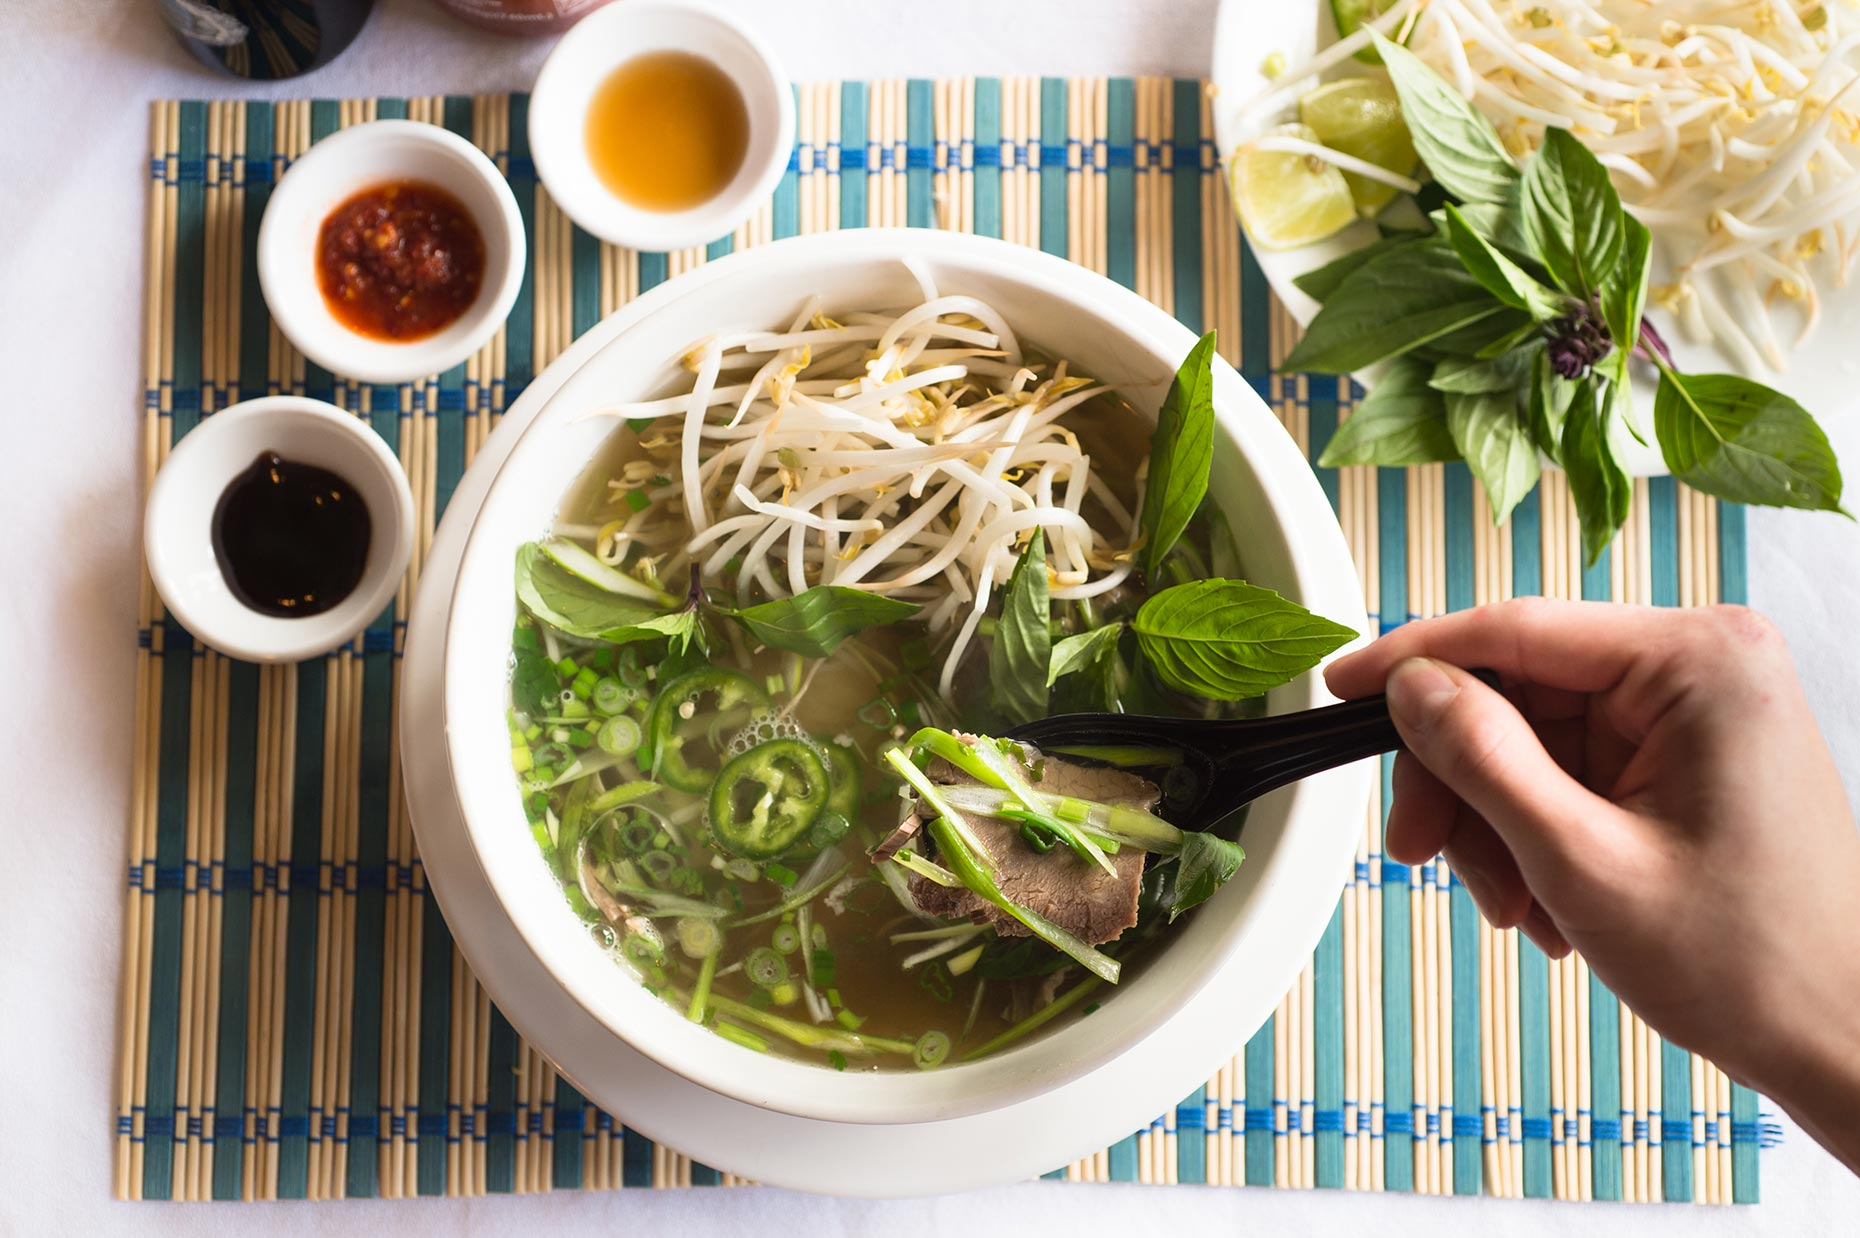 saigon-pho-jennifer-may-ny-food-restaurant-photographer